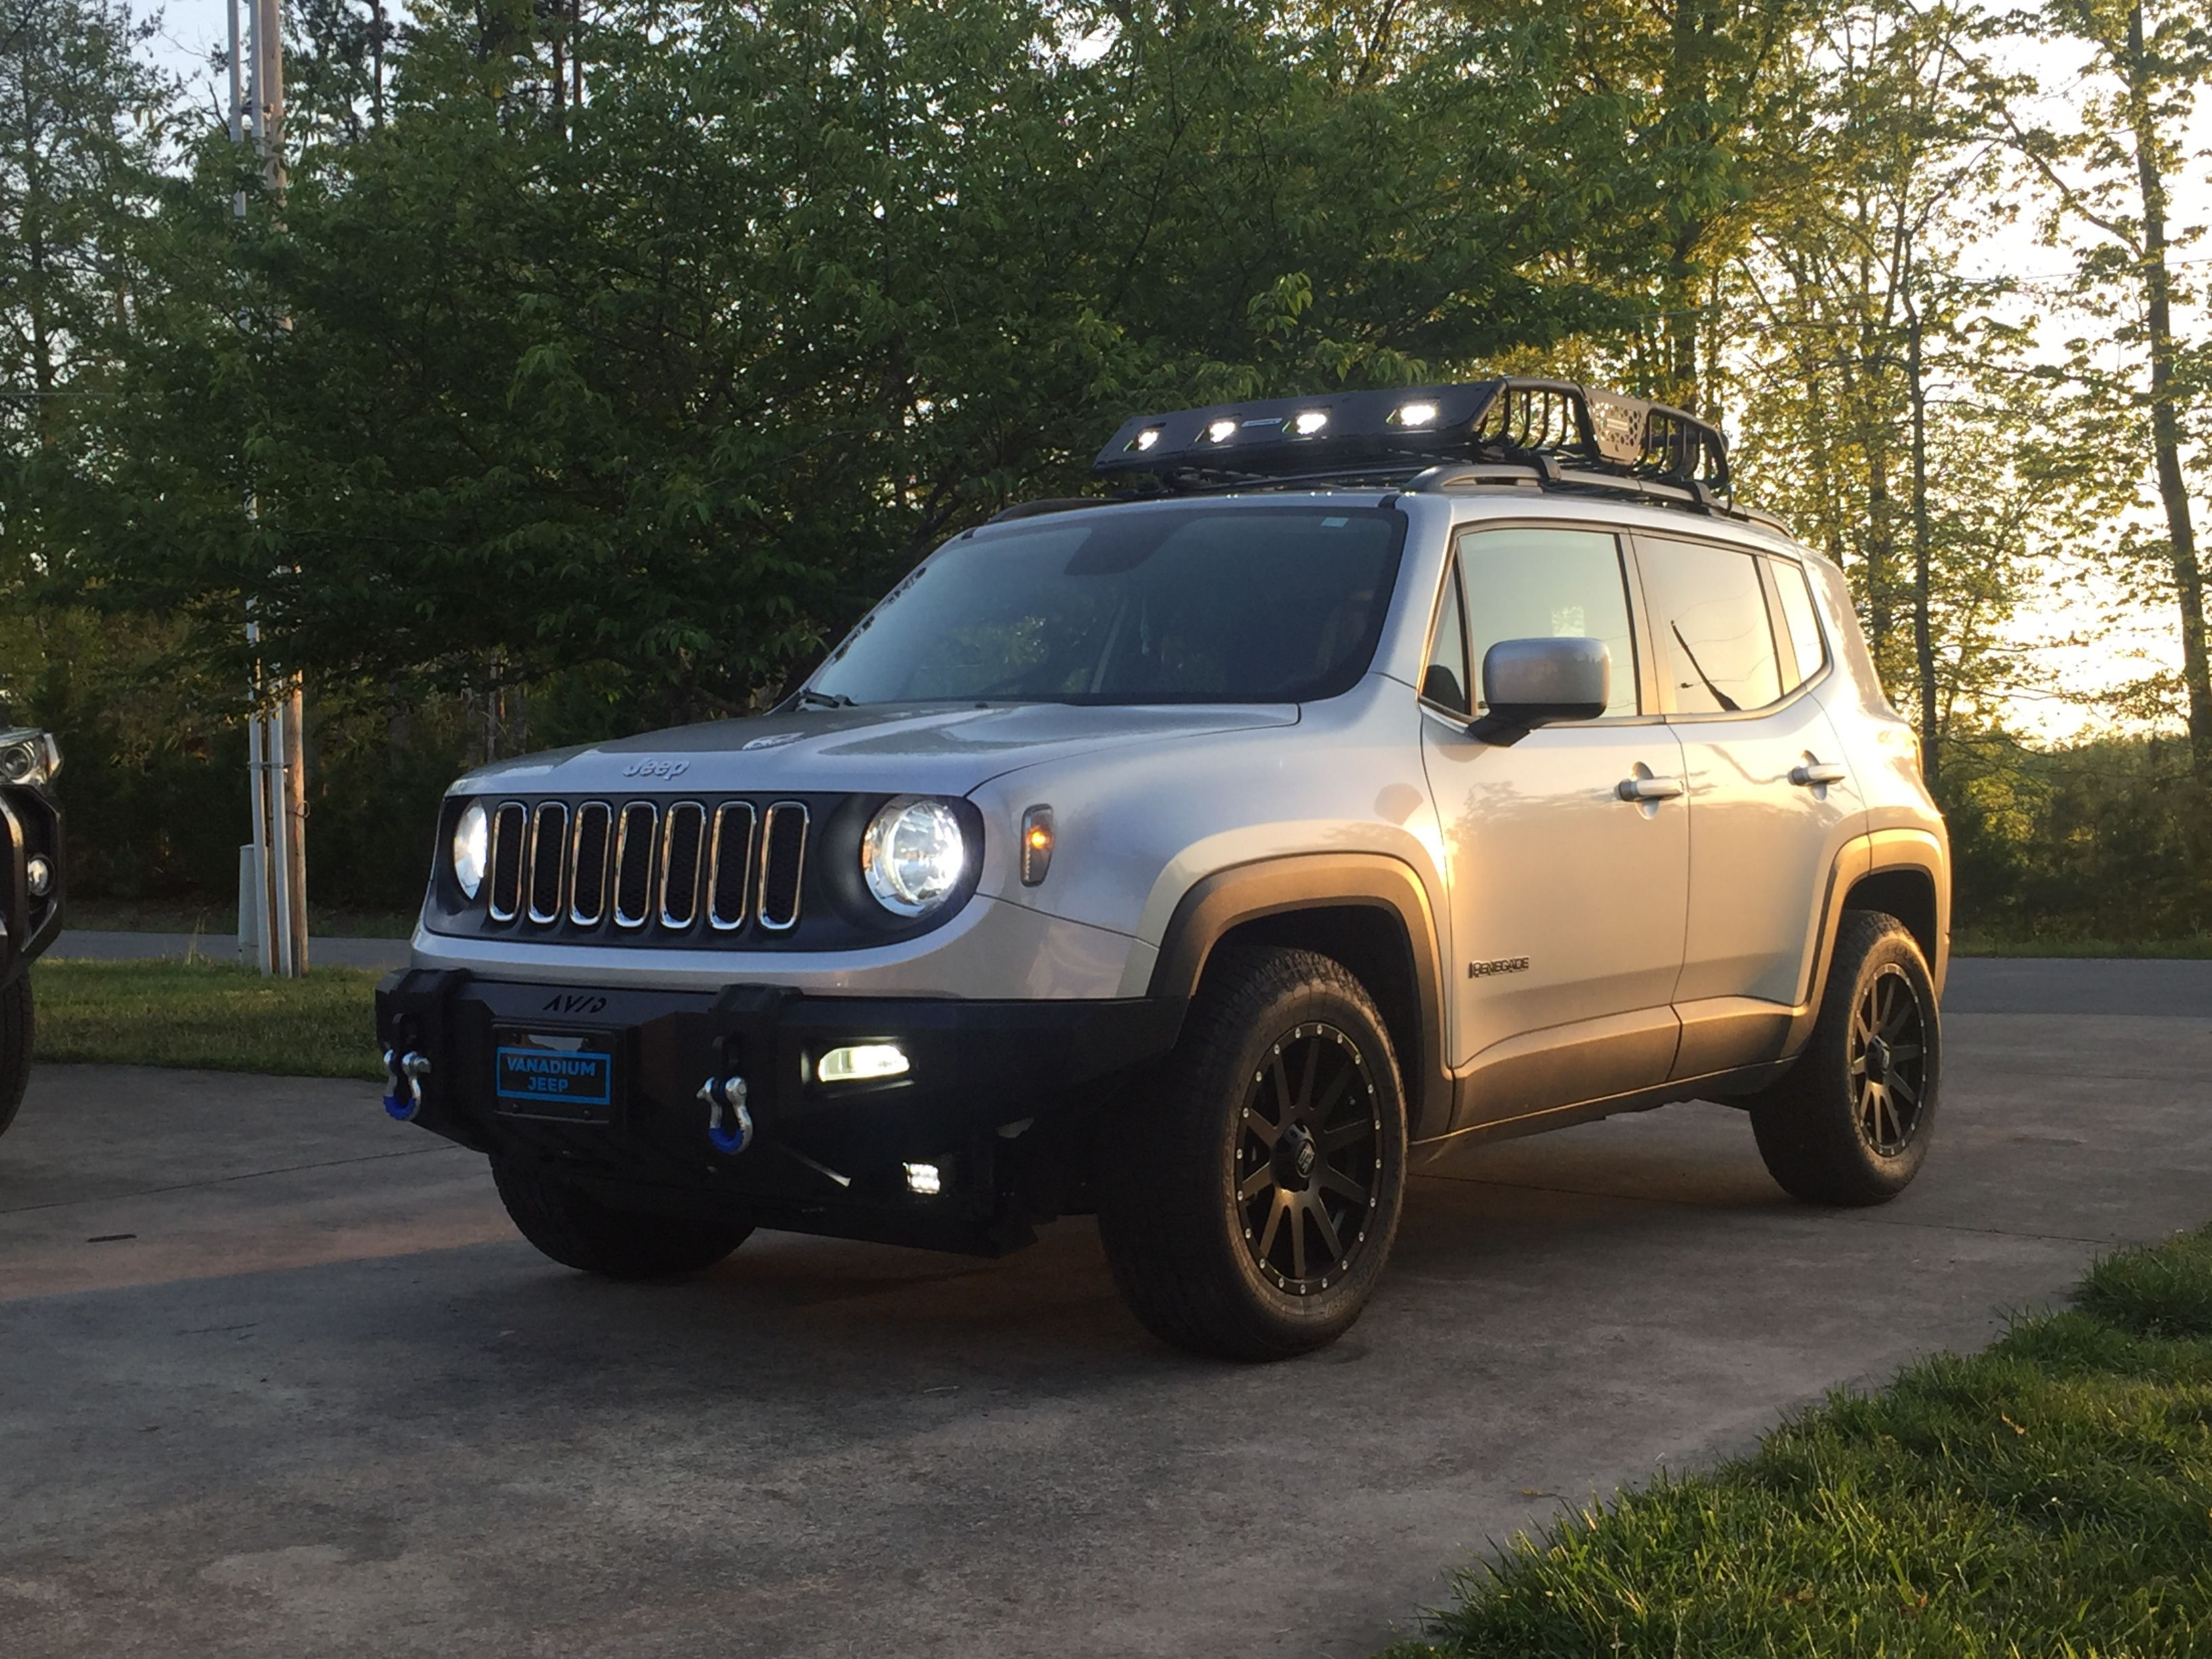 c4140df978ffaae96f56dfc99bc45d66 Great Description About Jeep Renegade Trunk with Extraordinary Pictures Cars Review